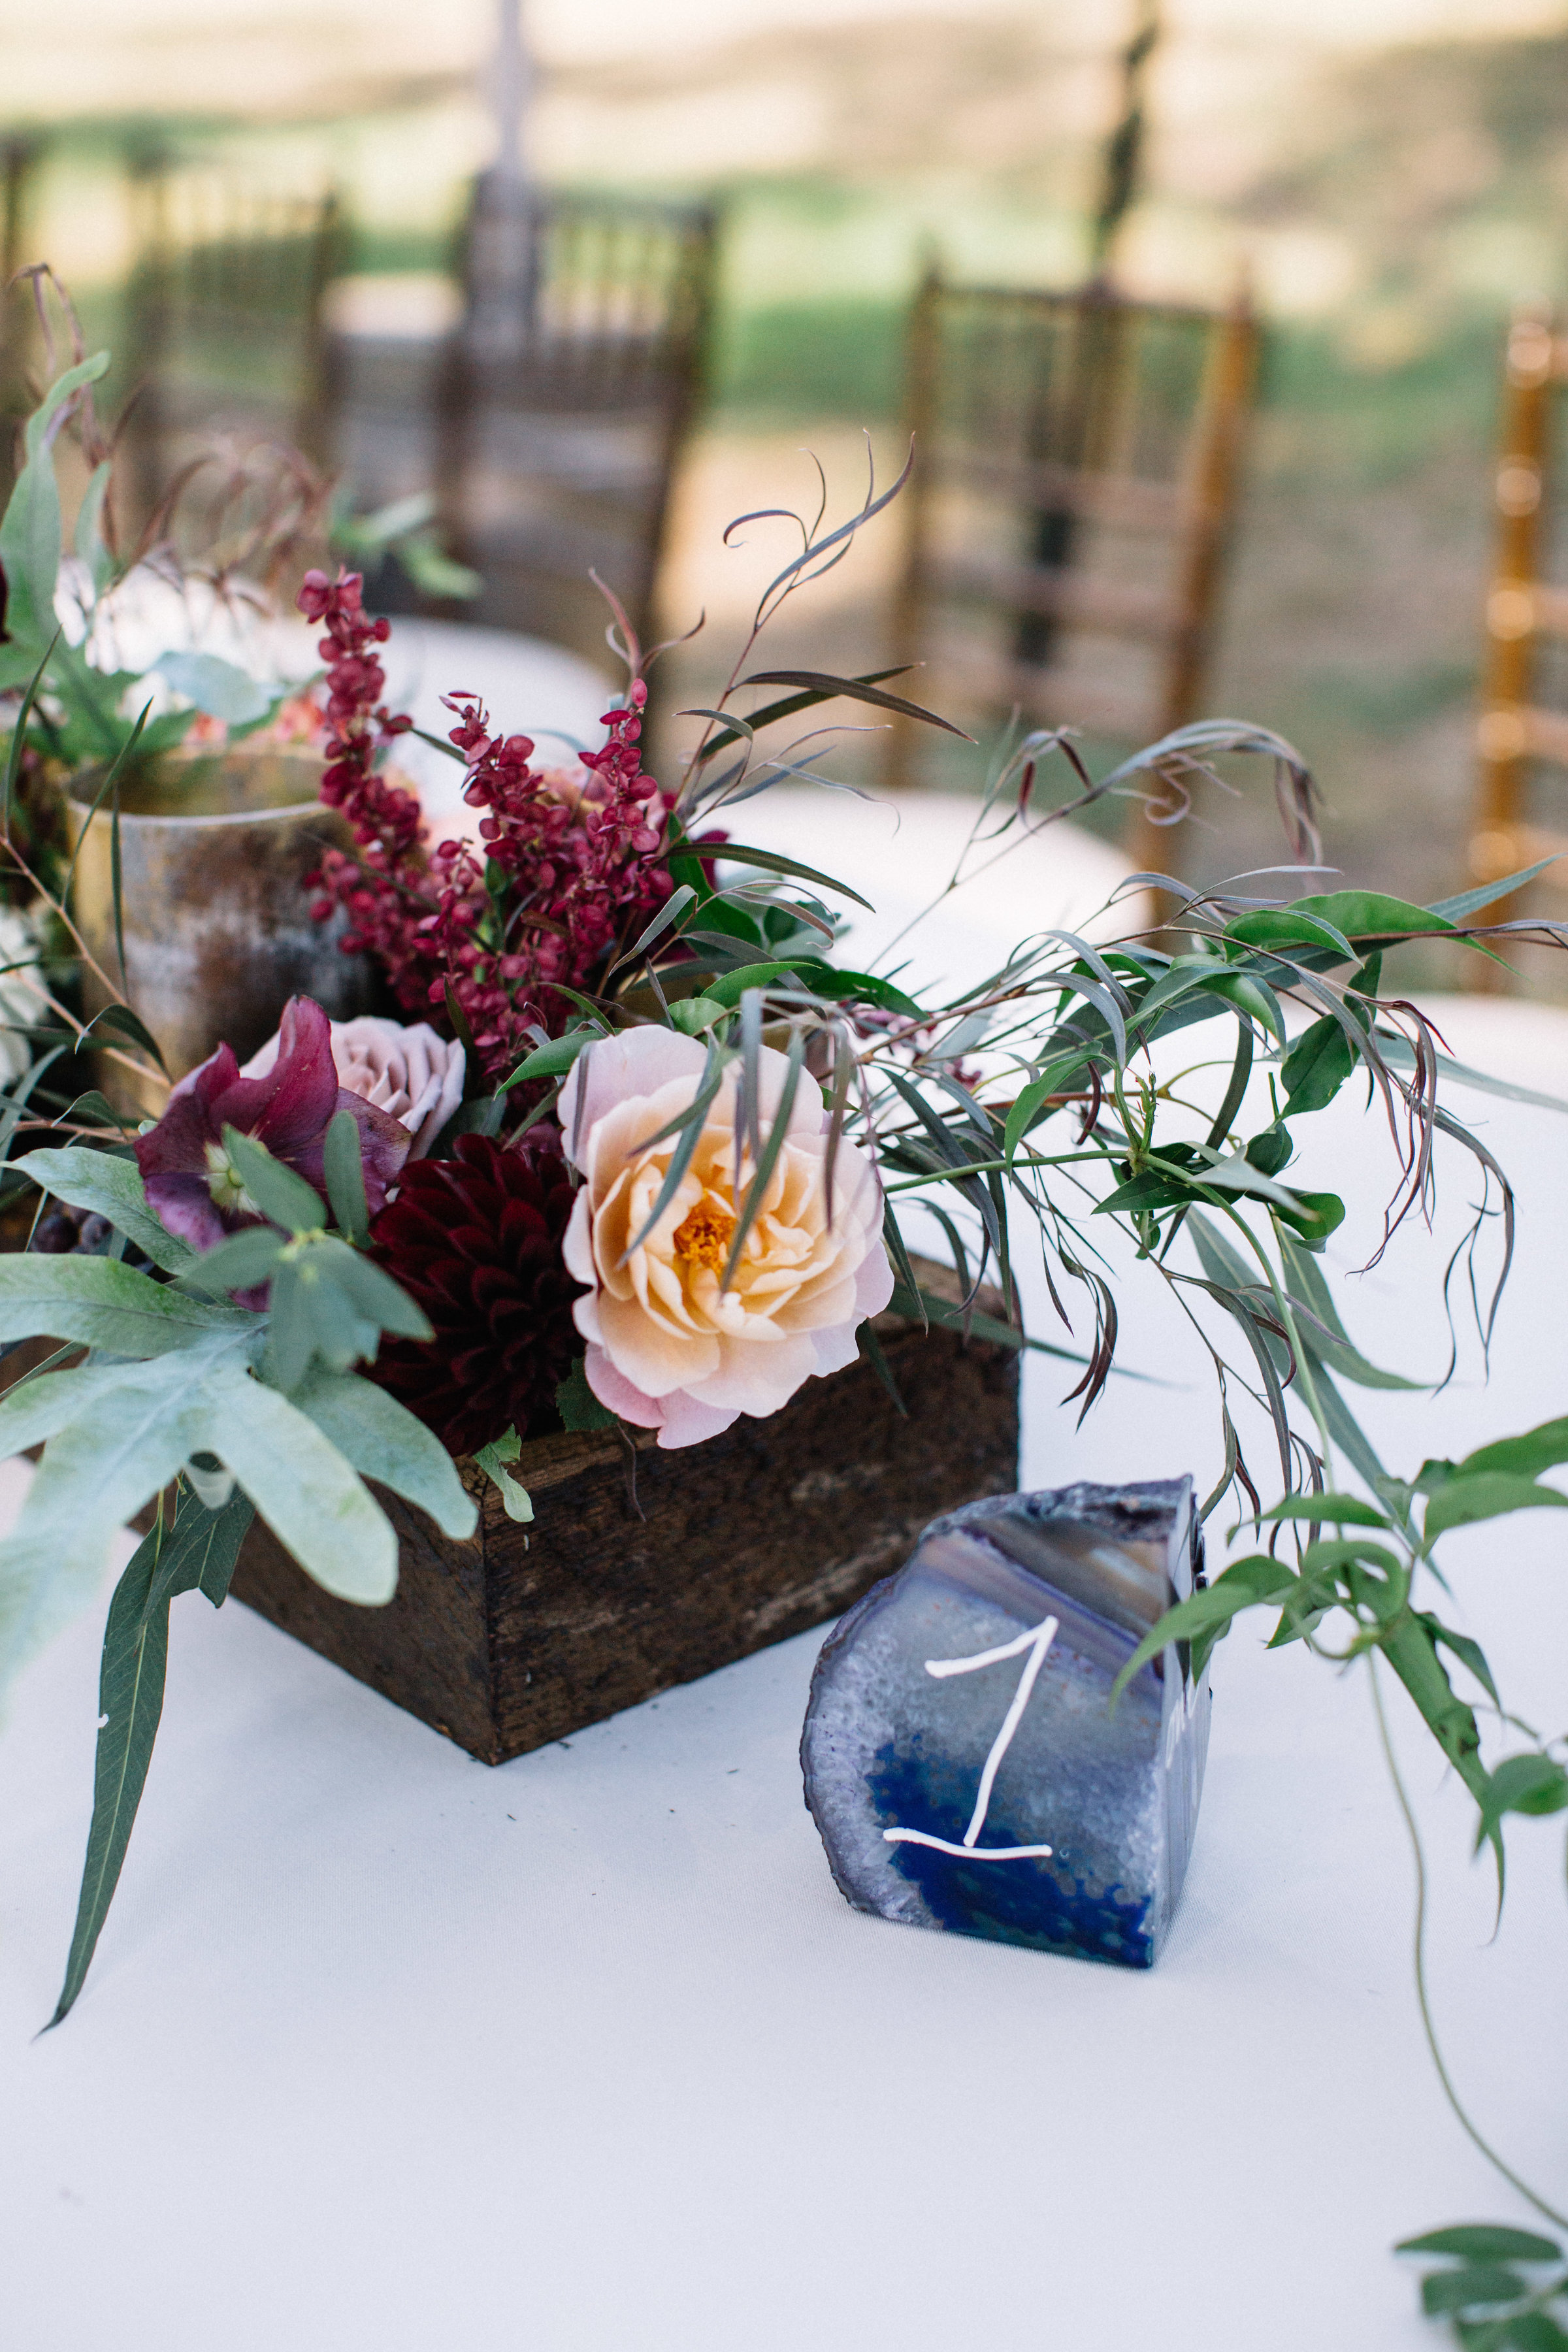 Tablescape with geodes, crystals , flowers, and candles by Venn Floral photographed by Lucille Lawrence in Northern California at Straus Home Ranch.